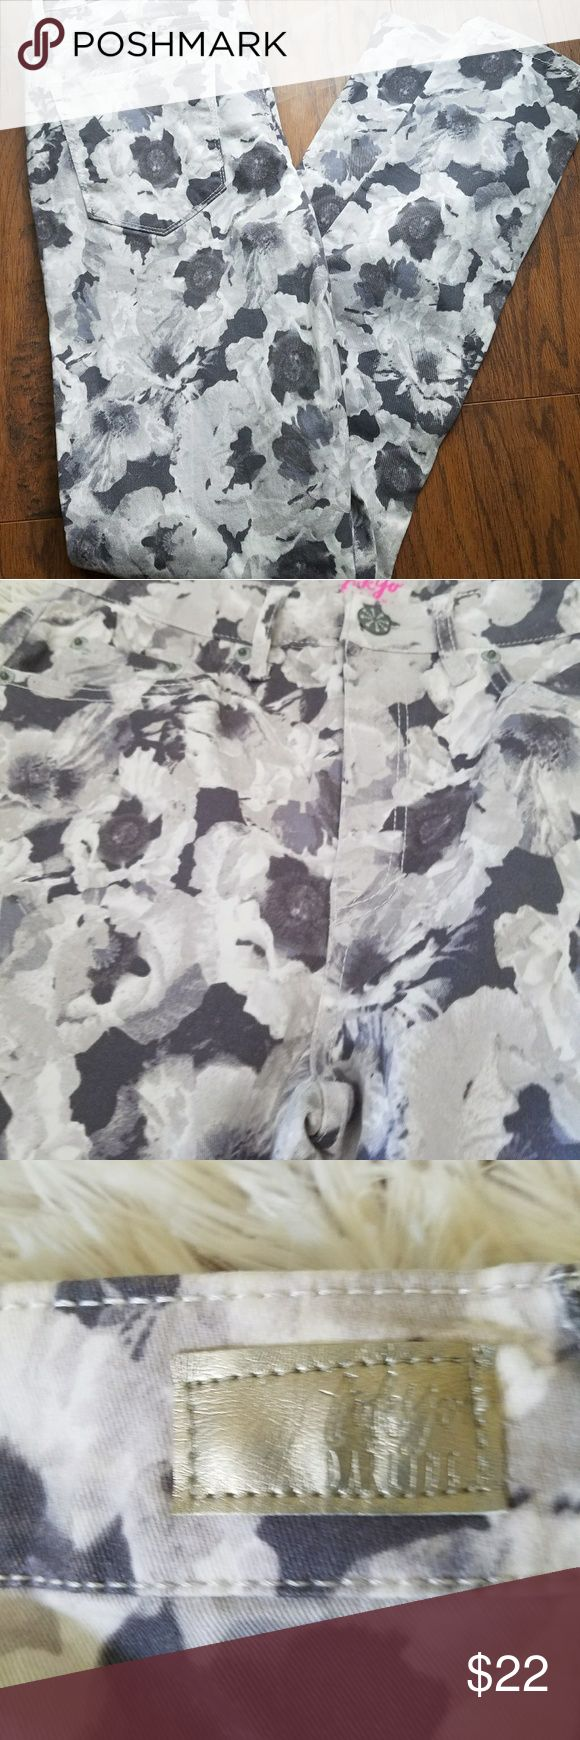 Aeropostale High Waisted Jeggings NWT Floral print in grey and white. 4R High Waisted NEW WITH TAGS AEROPOSTAL Tokyo Darling. Jeans Skinny